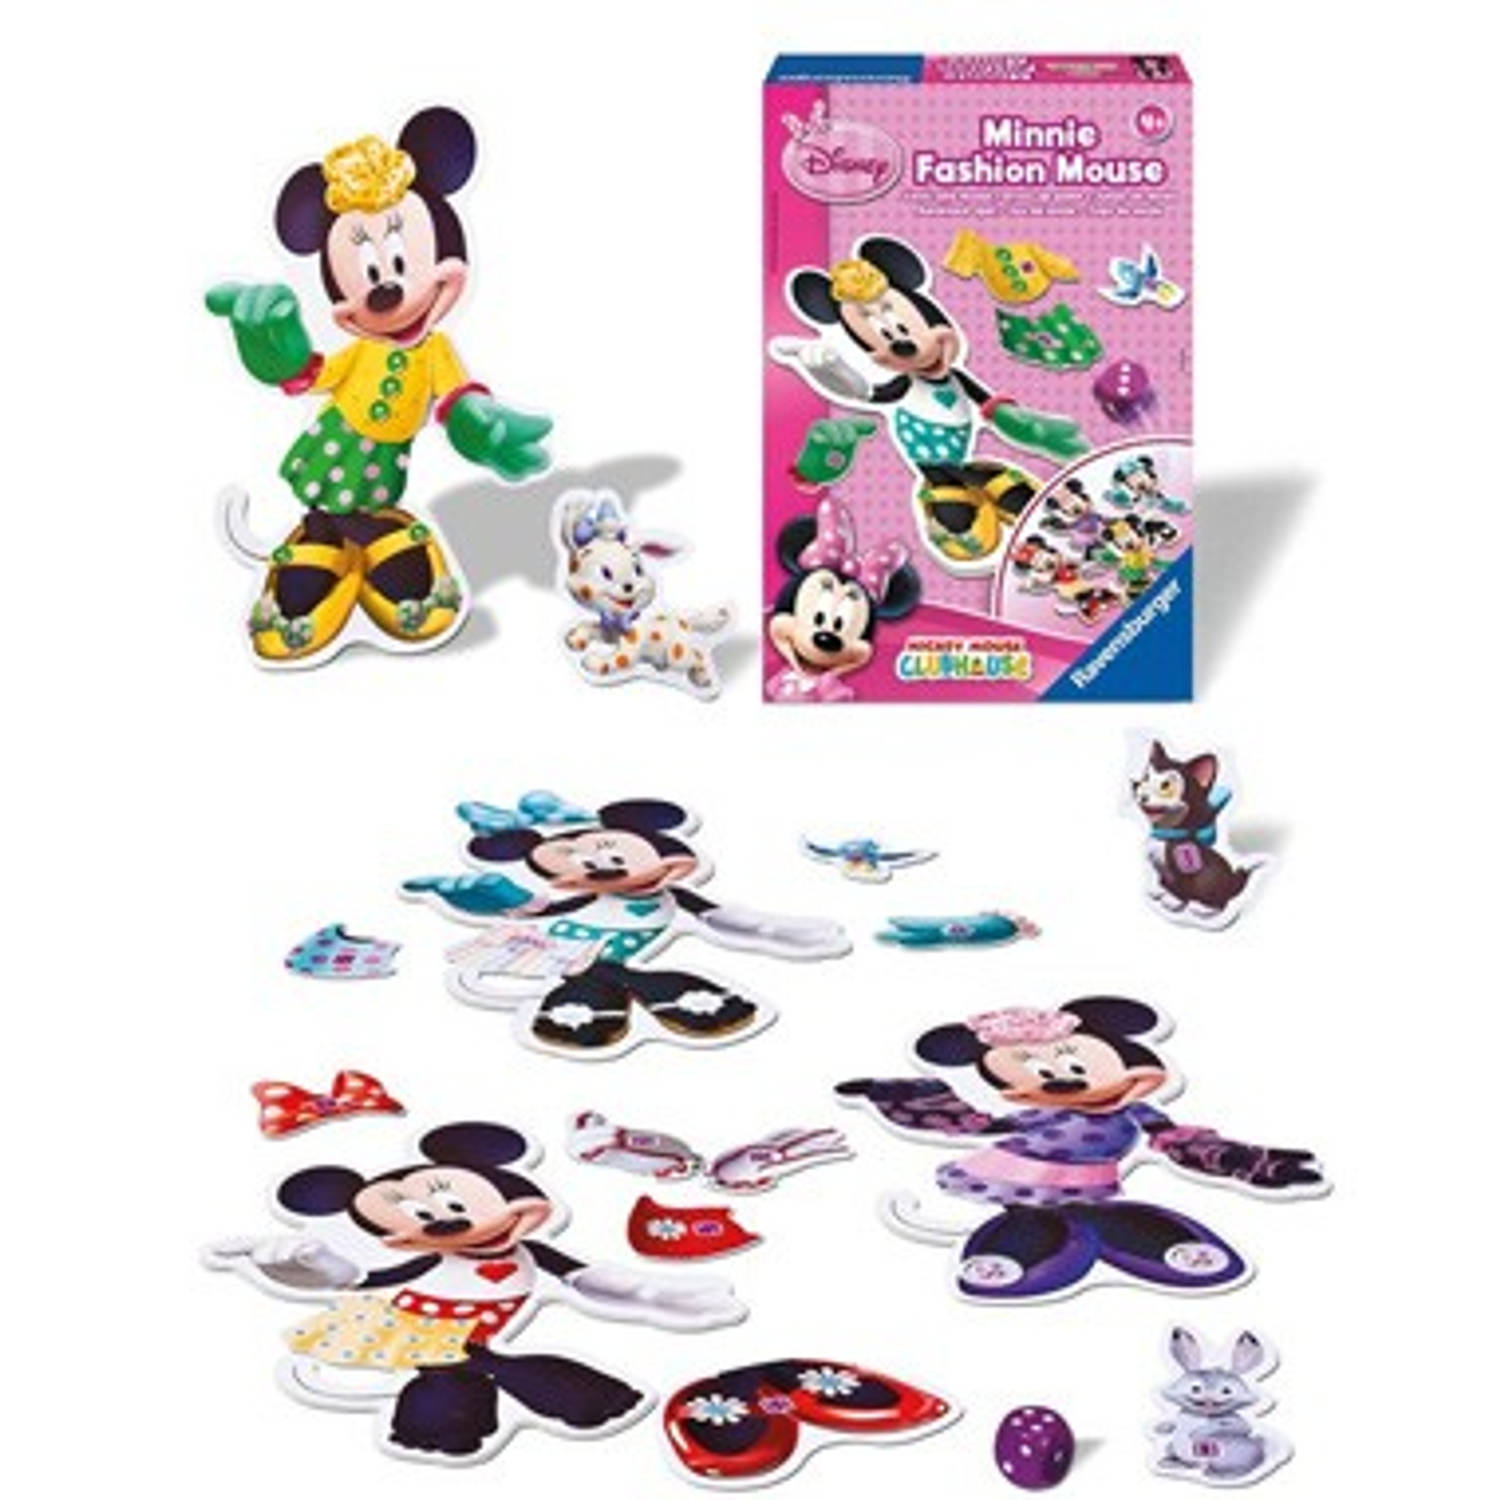 Disney Minnie Fashion Mouse